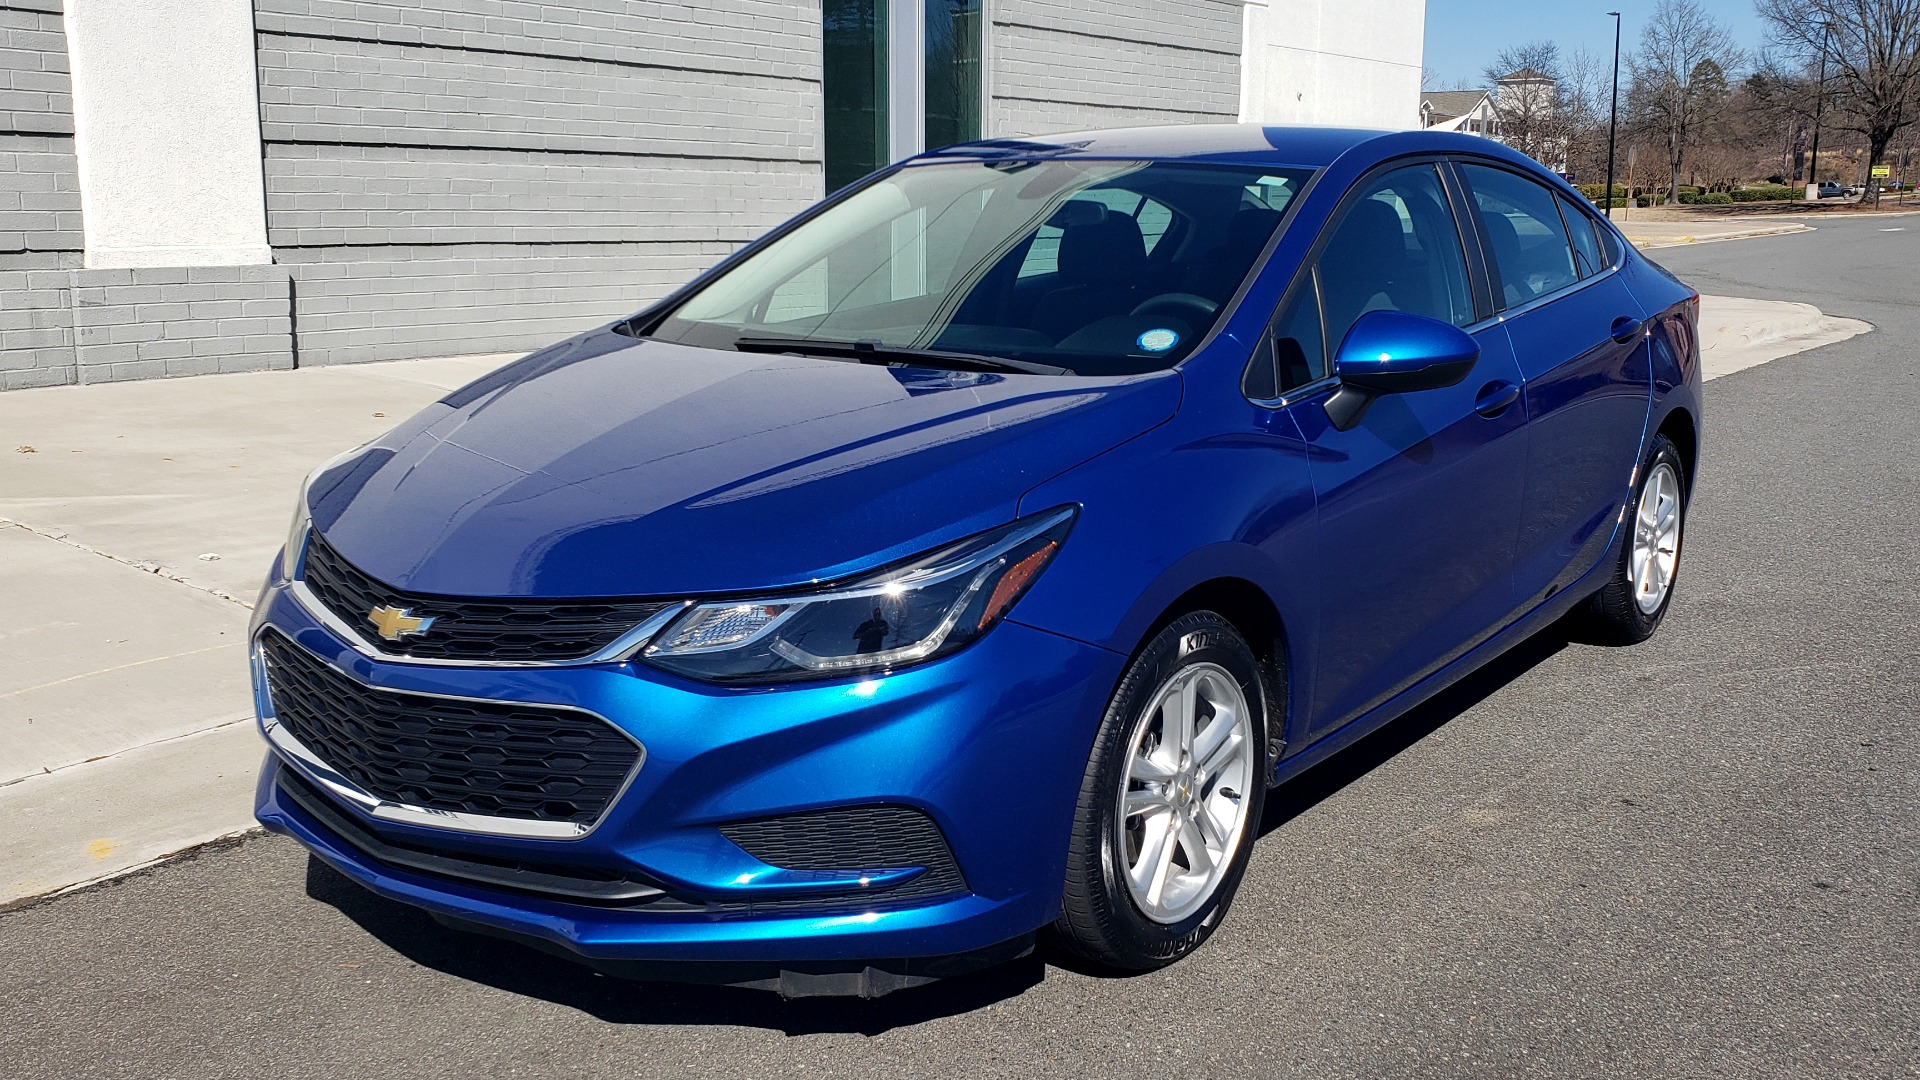 Used 2017 Chevrolet CRUZE LT 1.4L 1SD / 6-SPD AUTO / HTS STS / REMOTE START / REARVIEW for sale $11,495 at Formula Imports in Charlotte NC 28227 1